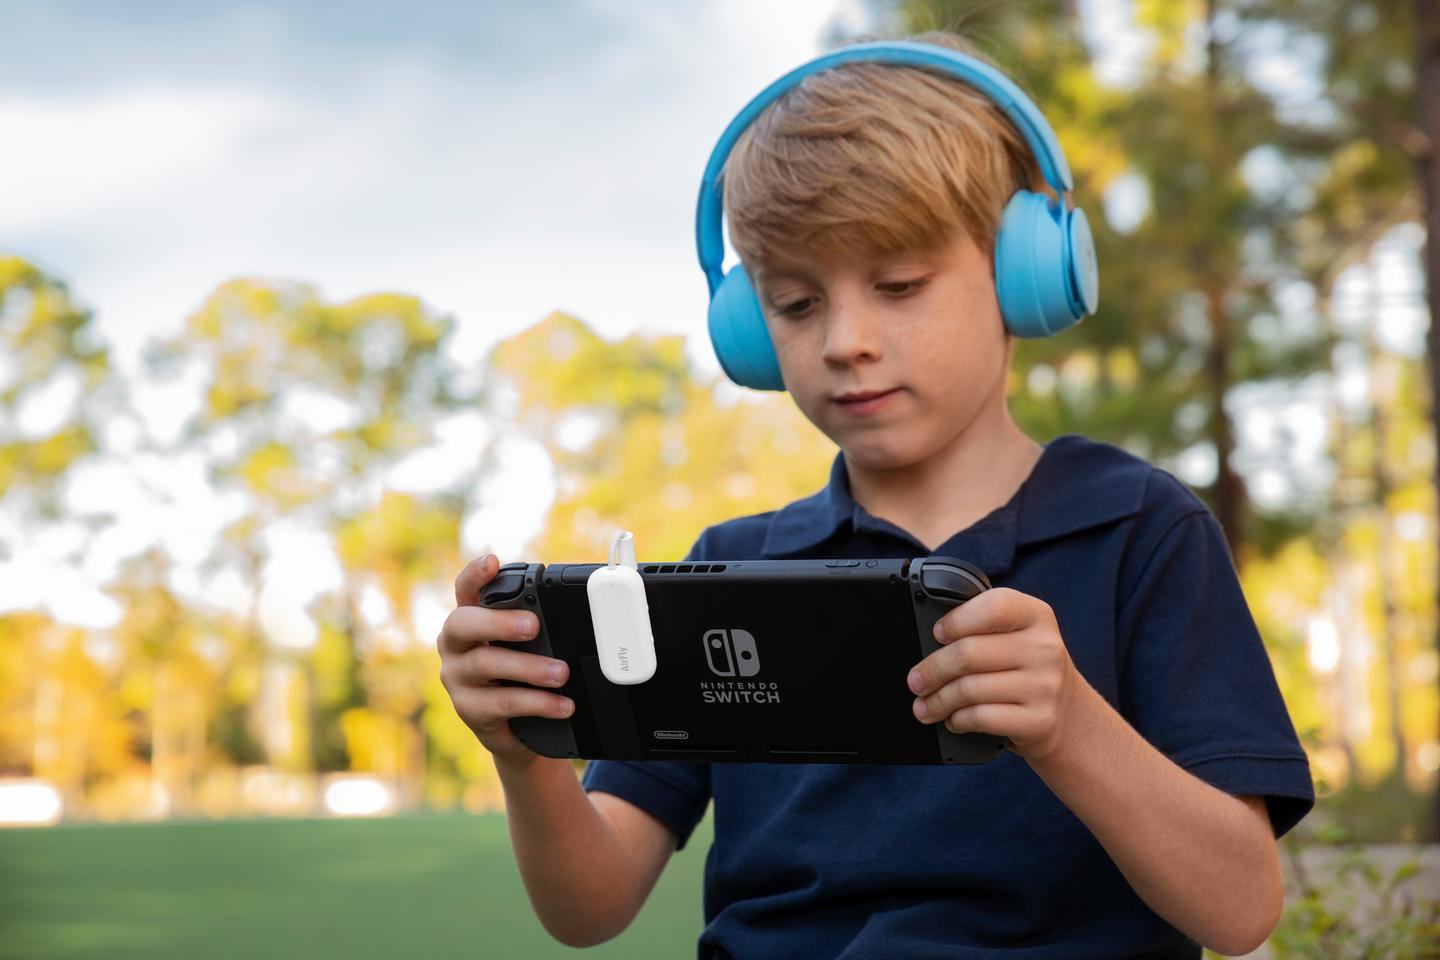 The AirFly Pro can stream audio to wireless headphones from non-Bluetooth handheld gaming devices